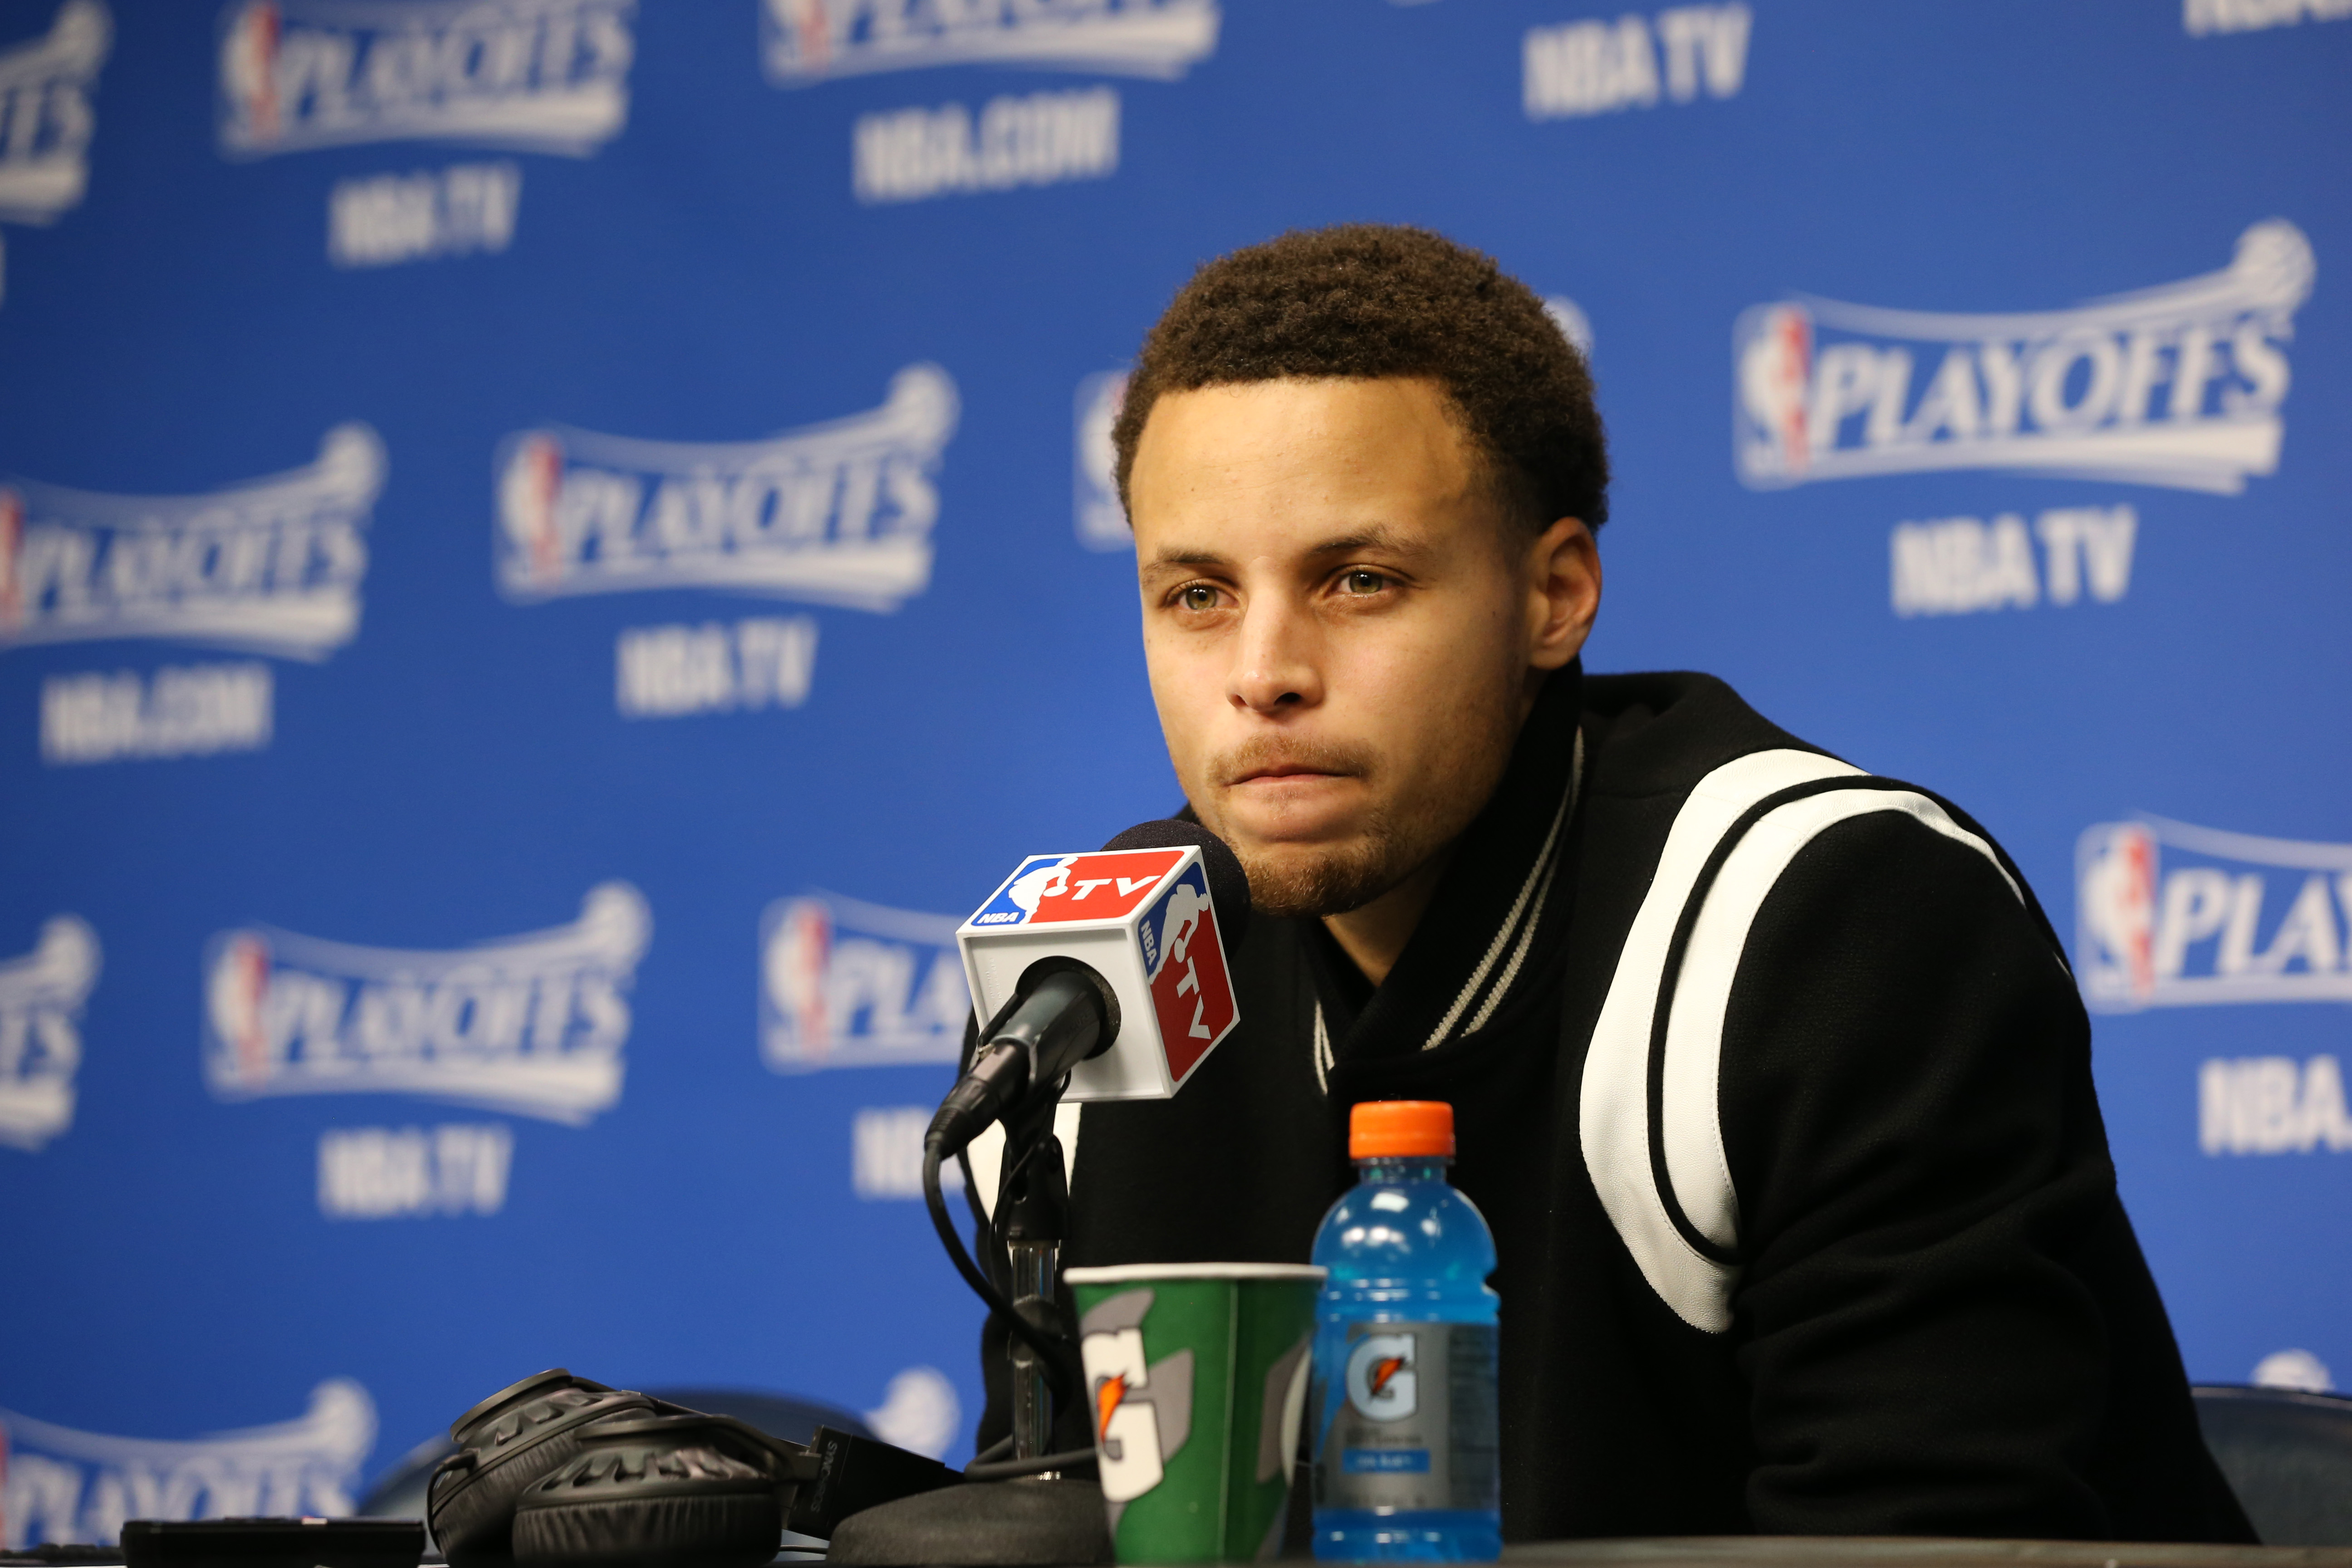 MEMPHIS, TN - MAY 9: Stephen Curry #30 of the Golden State Warriors speaks to press after the loss against the Memphis Grizzlies for Game Three of the Western Conference Semifinals during the NBA Playoffs on May 9, 2015 at FedExForum in Memphis, Tennessee